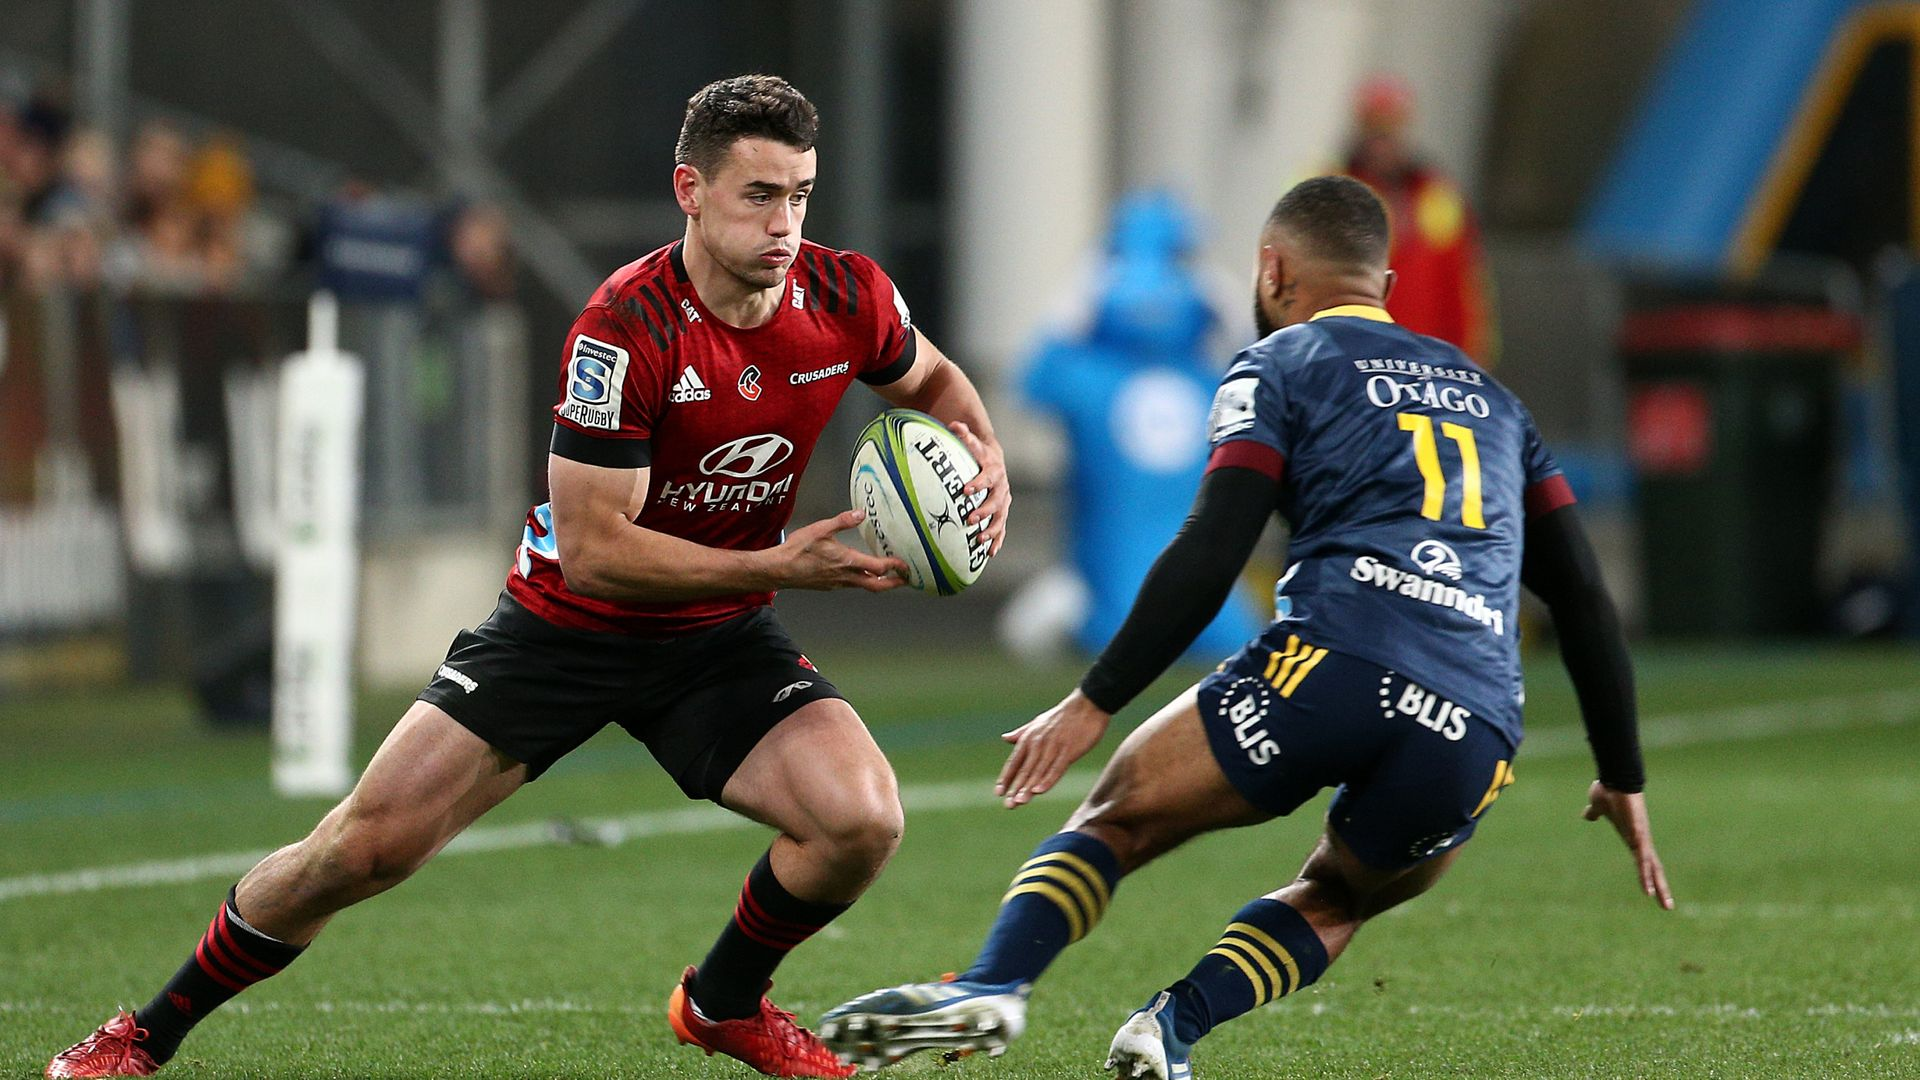 Jordan shines in Crusaders win - sky sports